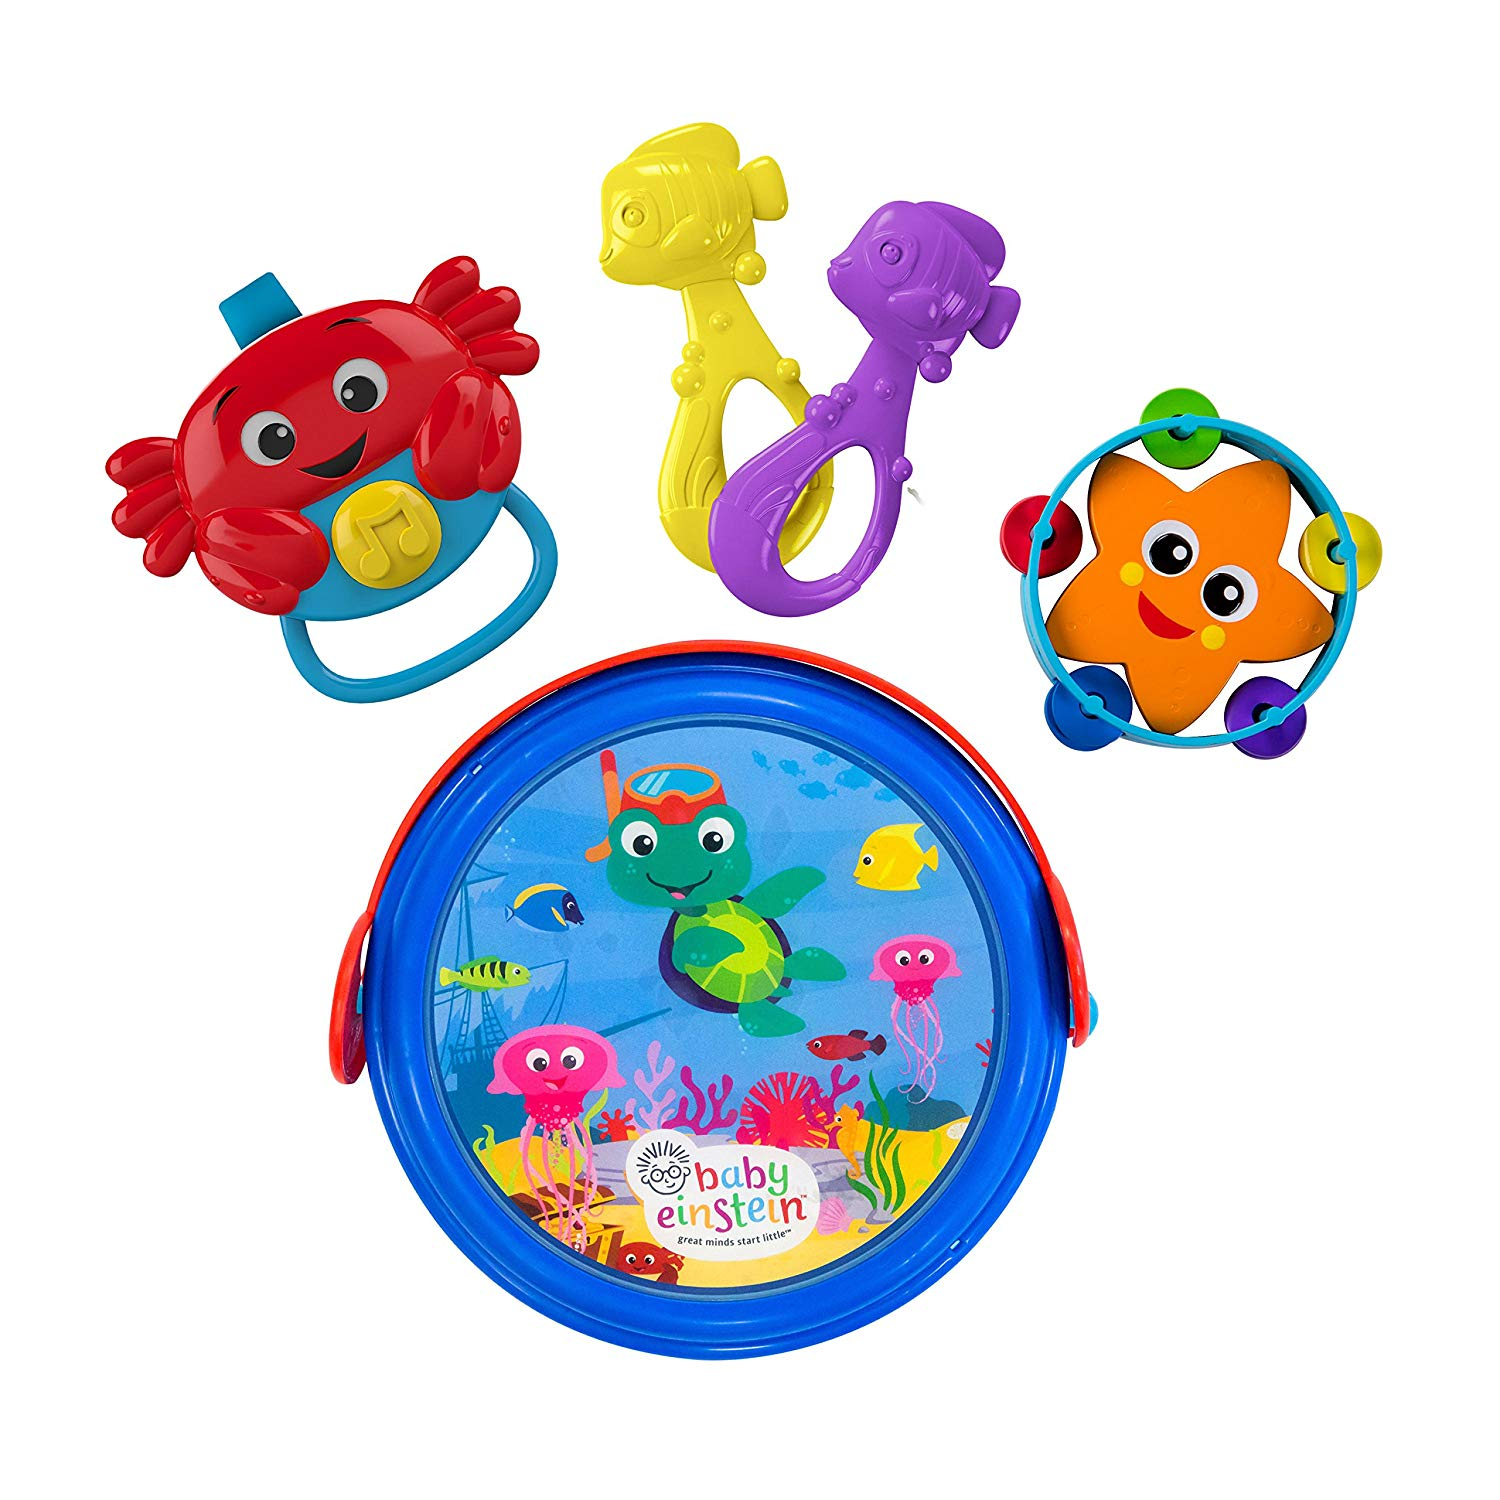 Baby Einstein Drum Set